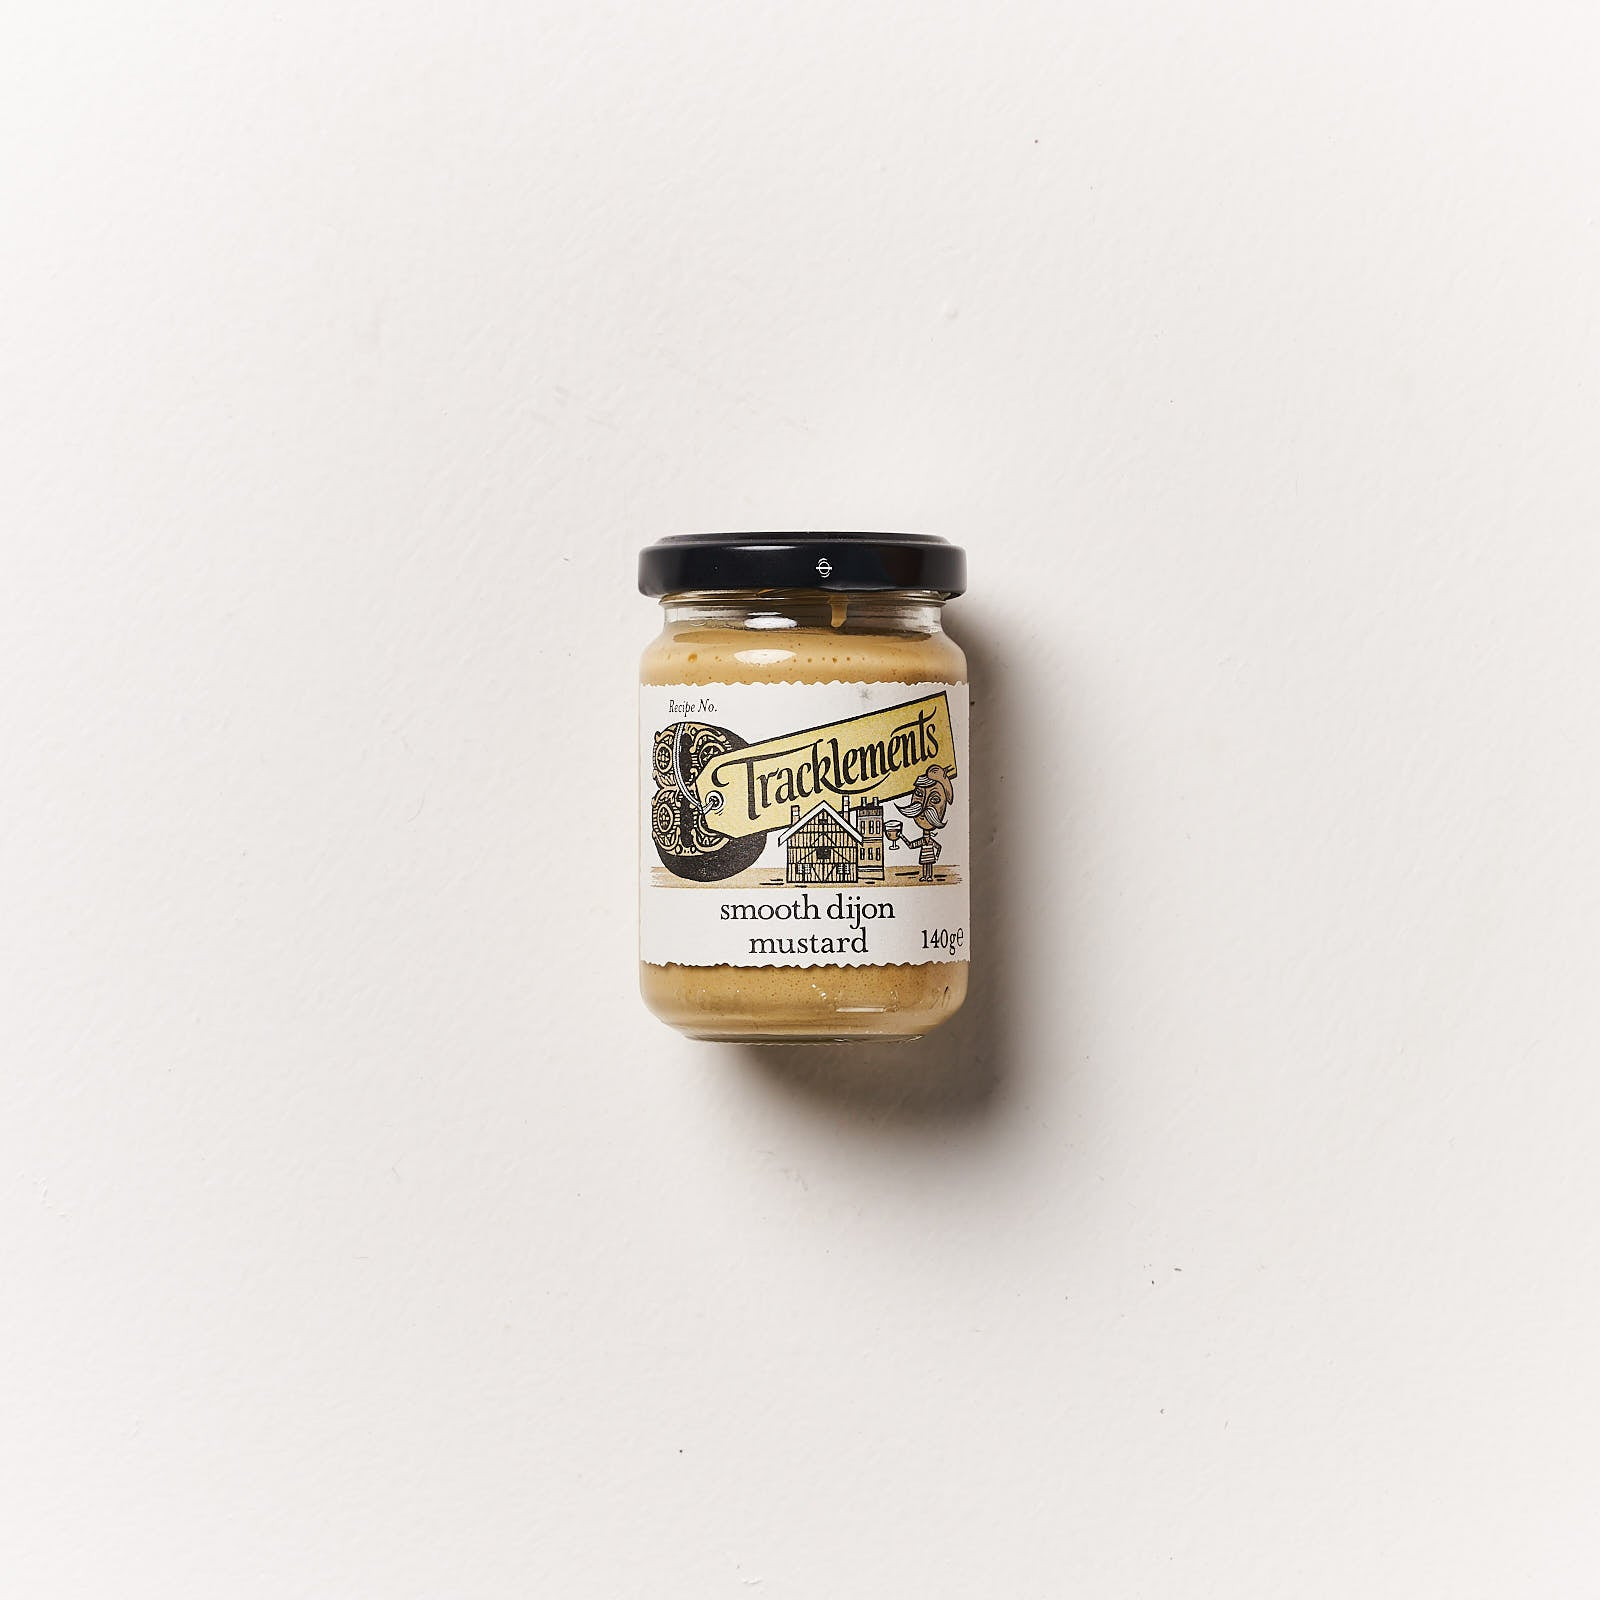 Tracklement Smooth Dijon Mustard